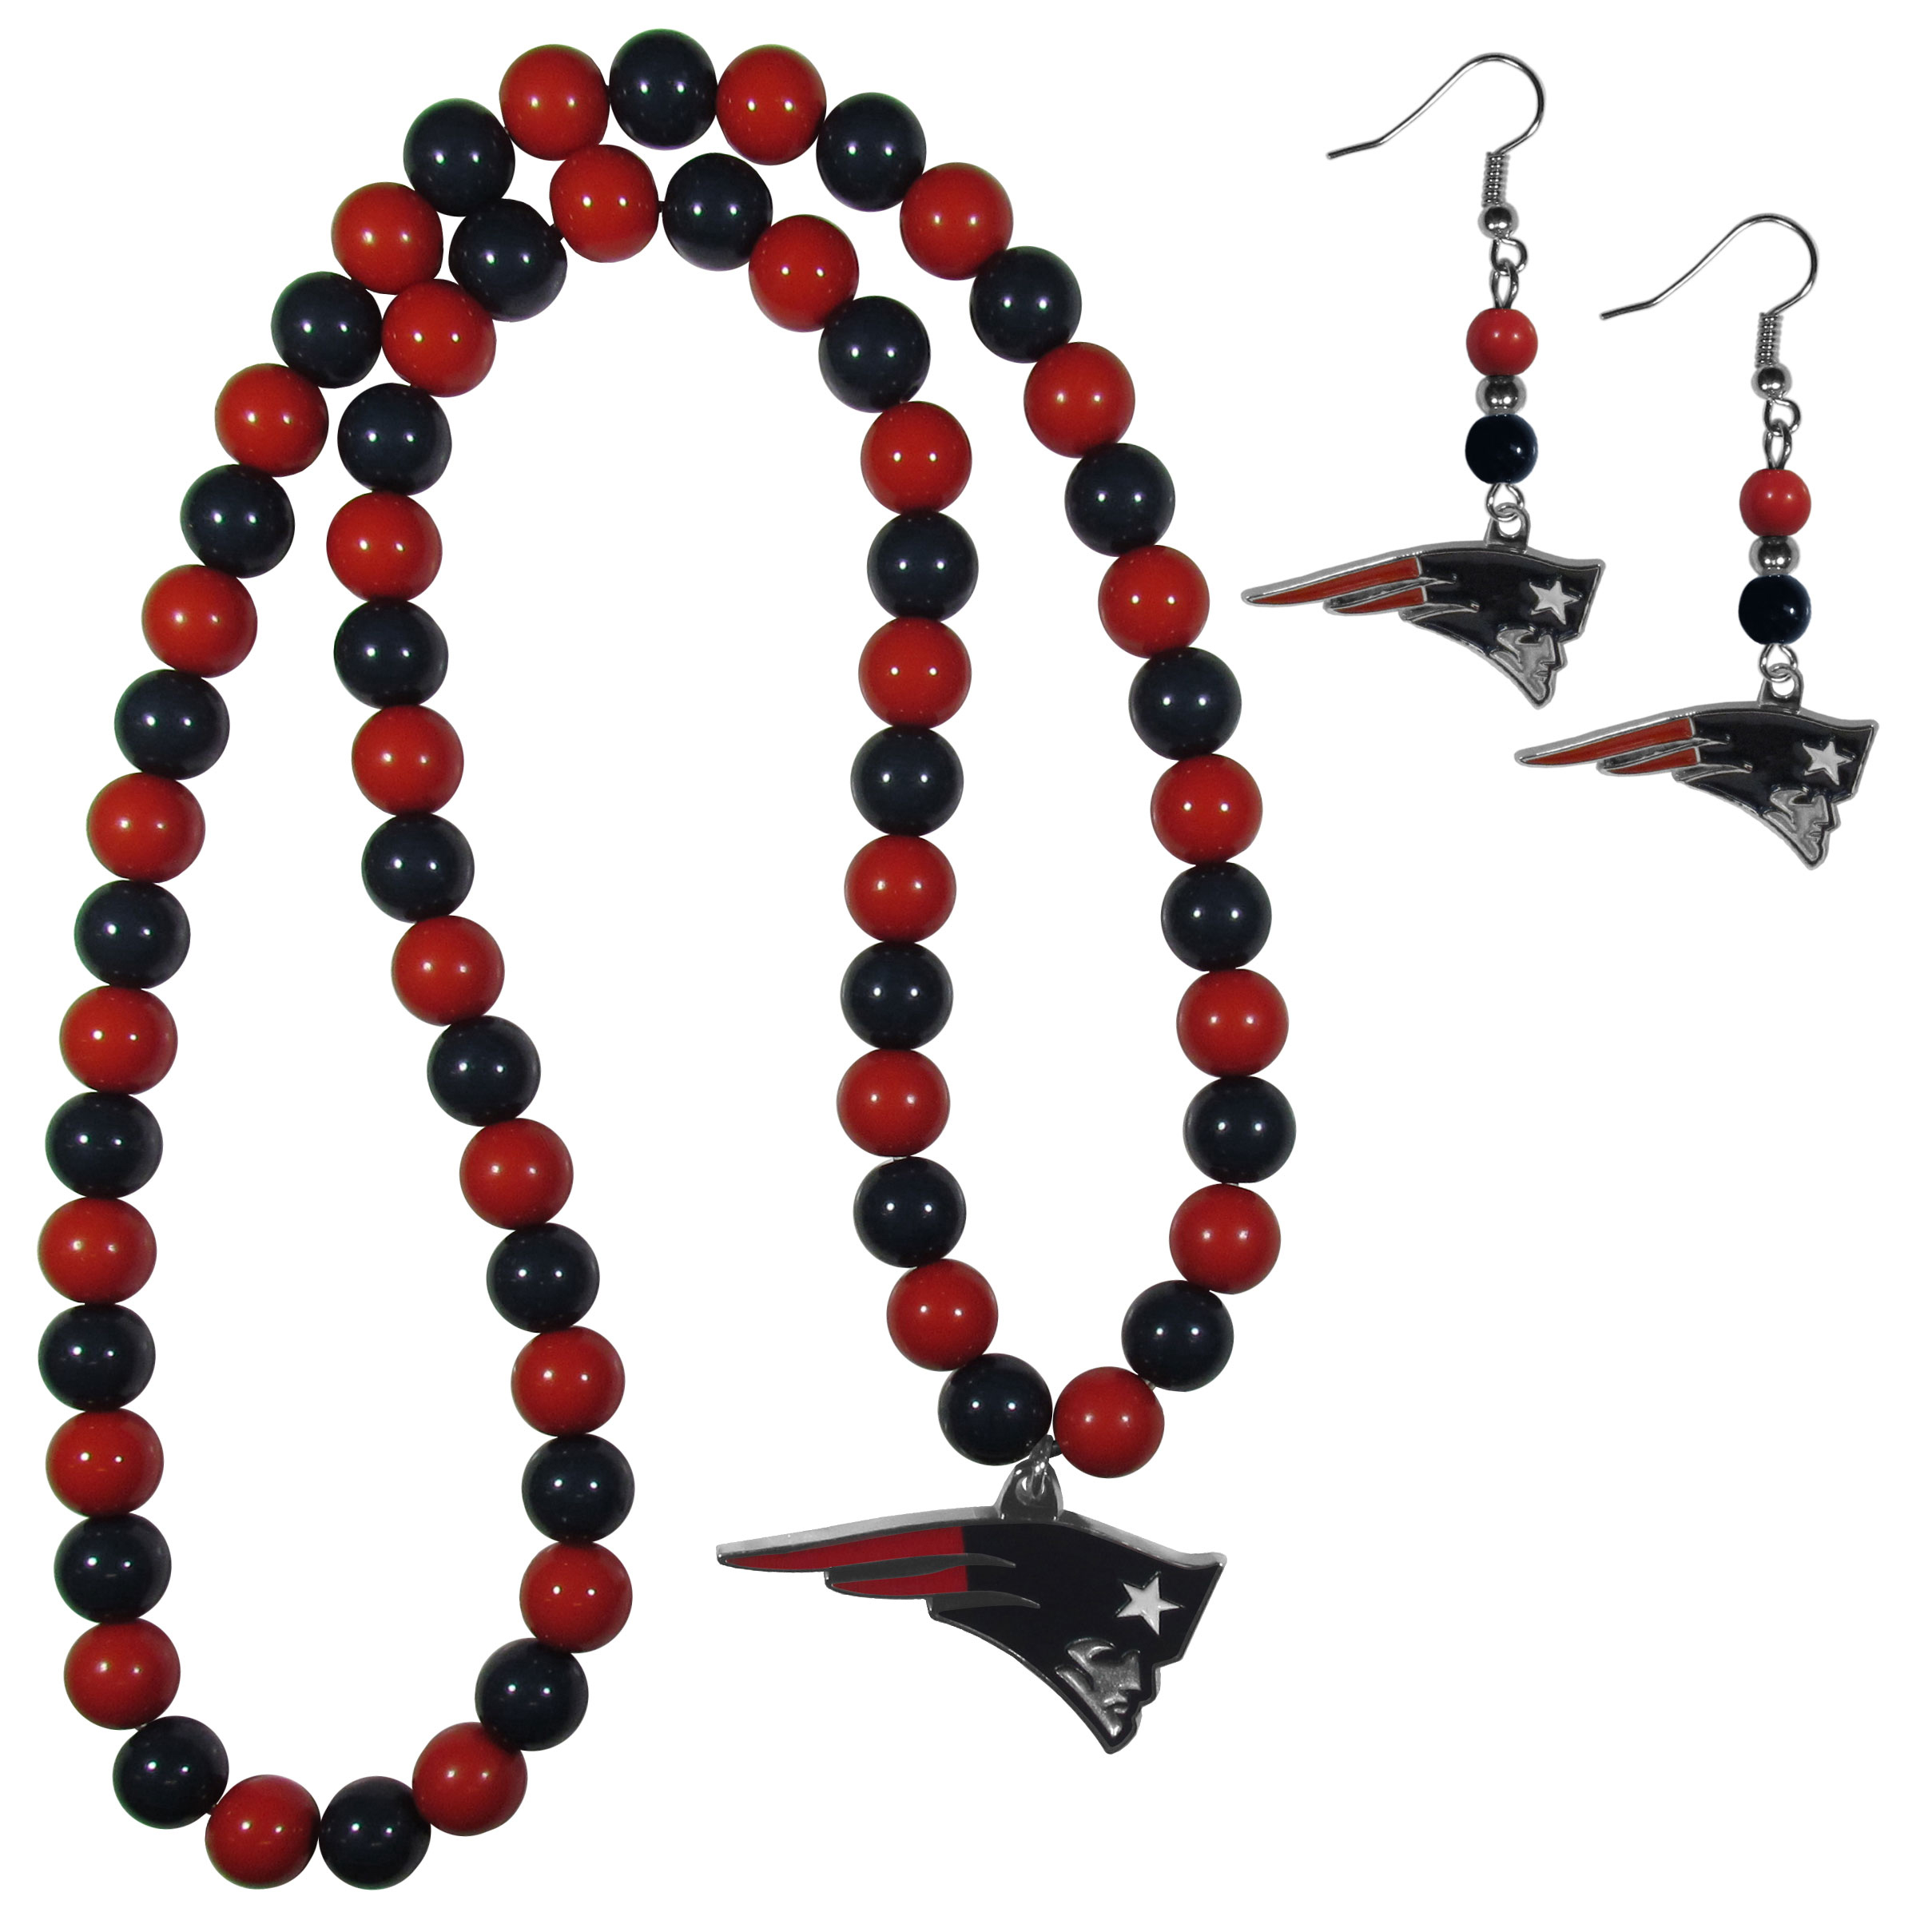 New England Patriots Fan Bead Earrings and Necklace Set - These fun and colorful New England Patriots fan bead jewelry pieces are an eyecatching way to show off your team spirit. The earrings feature hypoallergenic, nickel free fishhook post and 2 team colored beads with a beautifully carved team charm to finish this attractive dangle look. The mathcing bracelet has alternating team colored beads on a stretch cord and features a matching team charm.